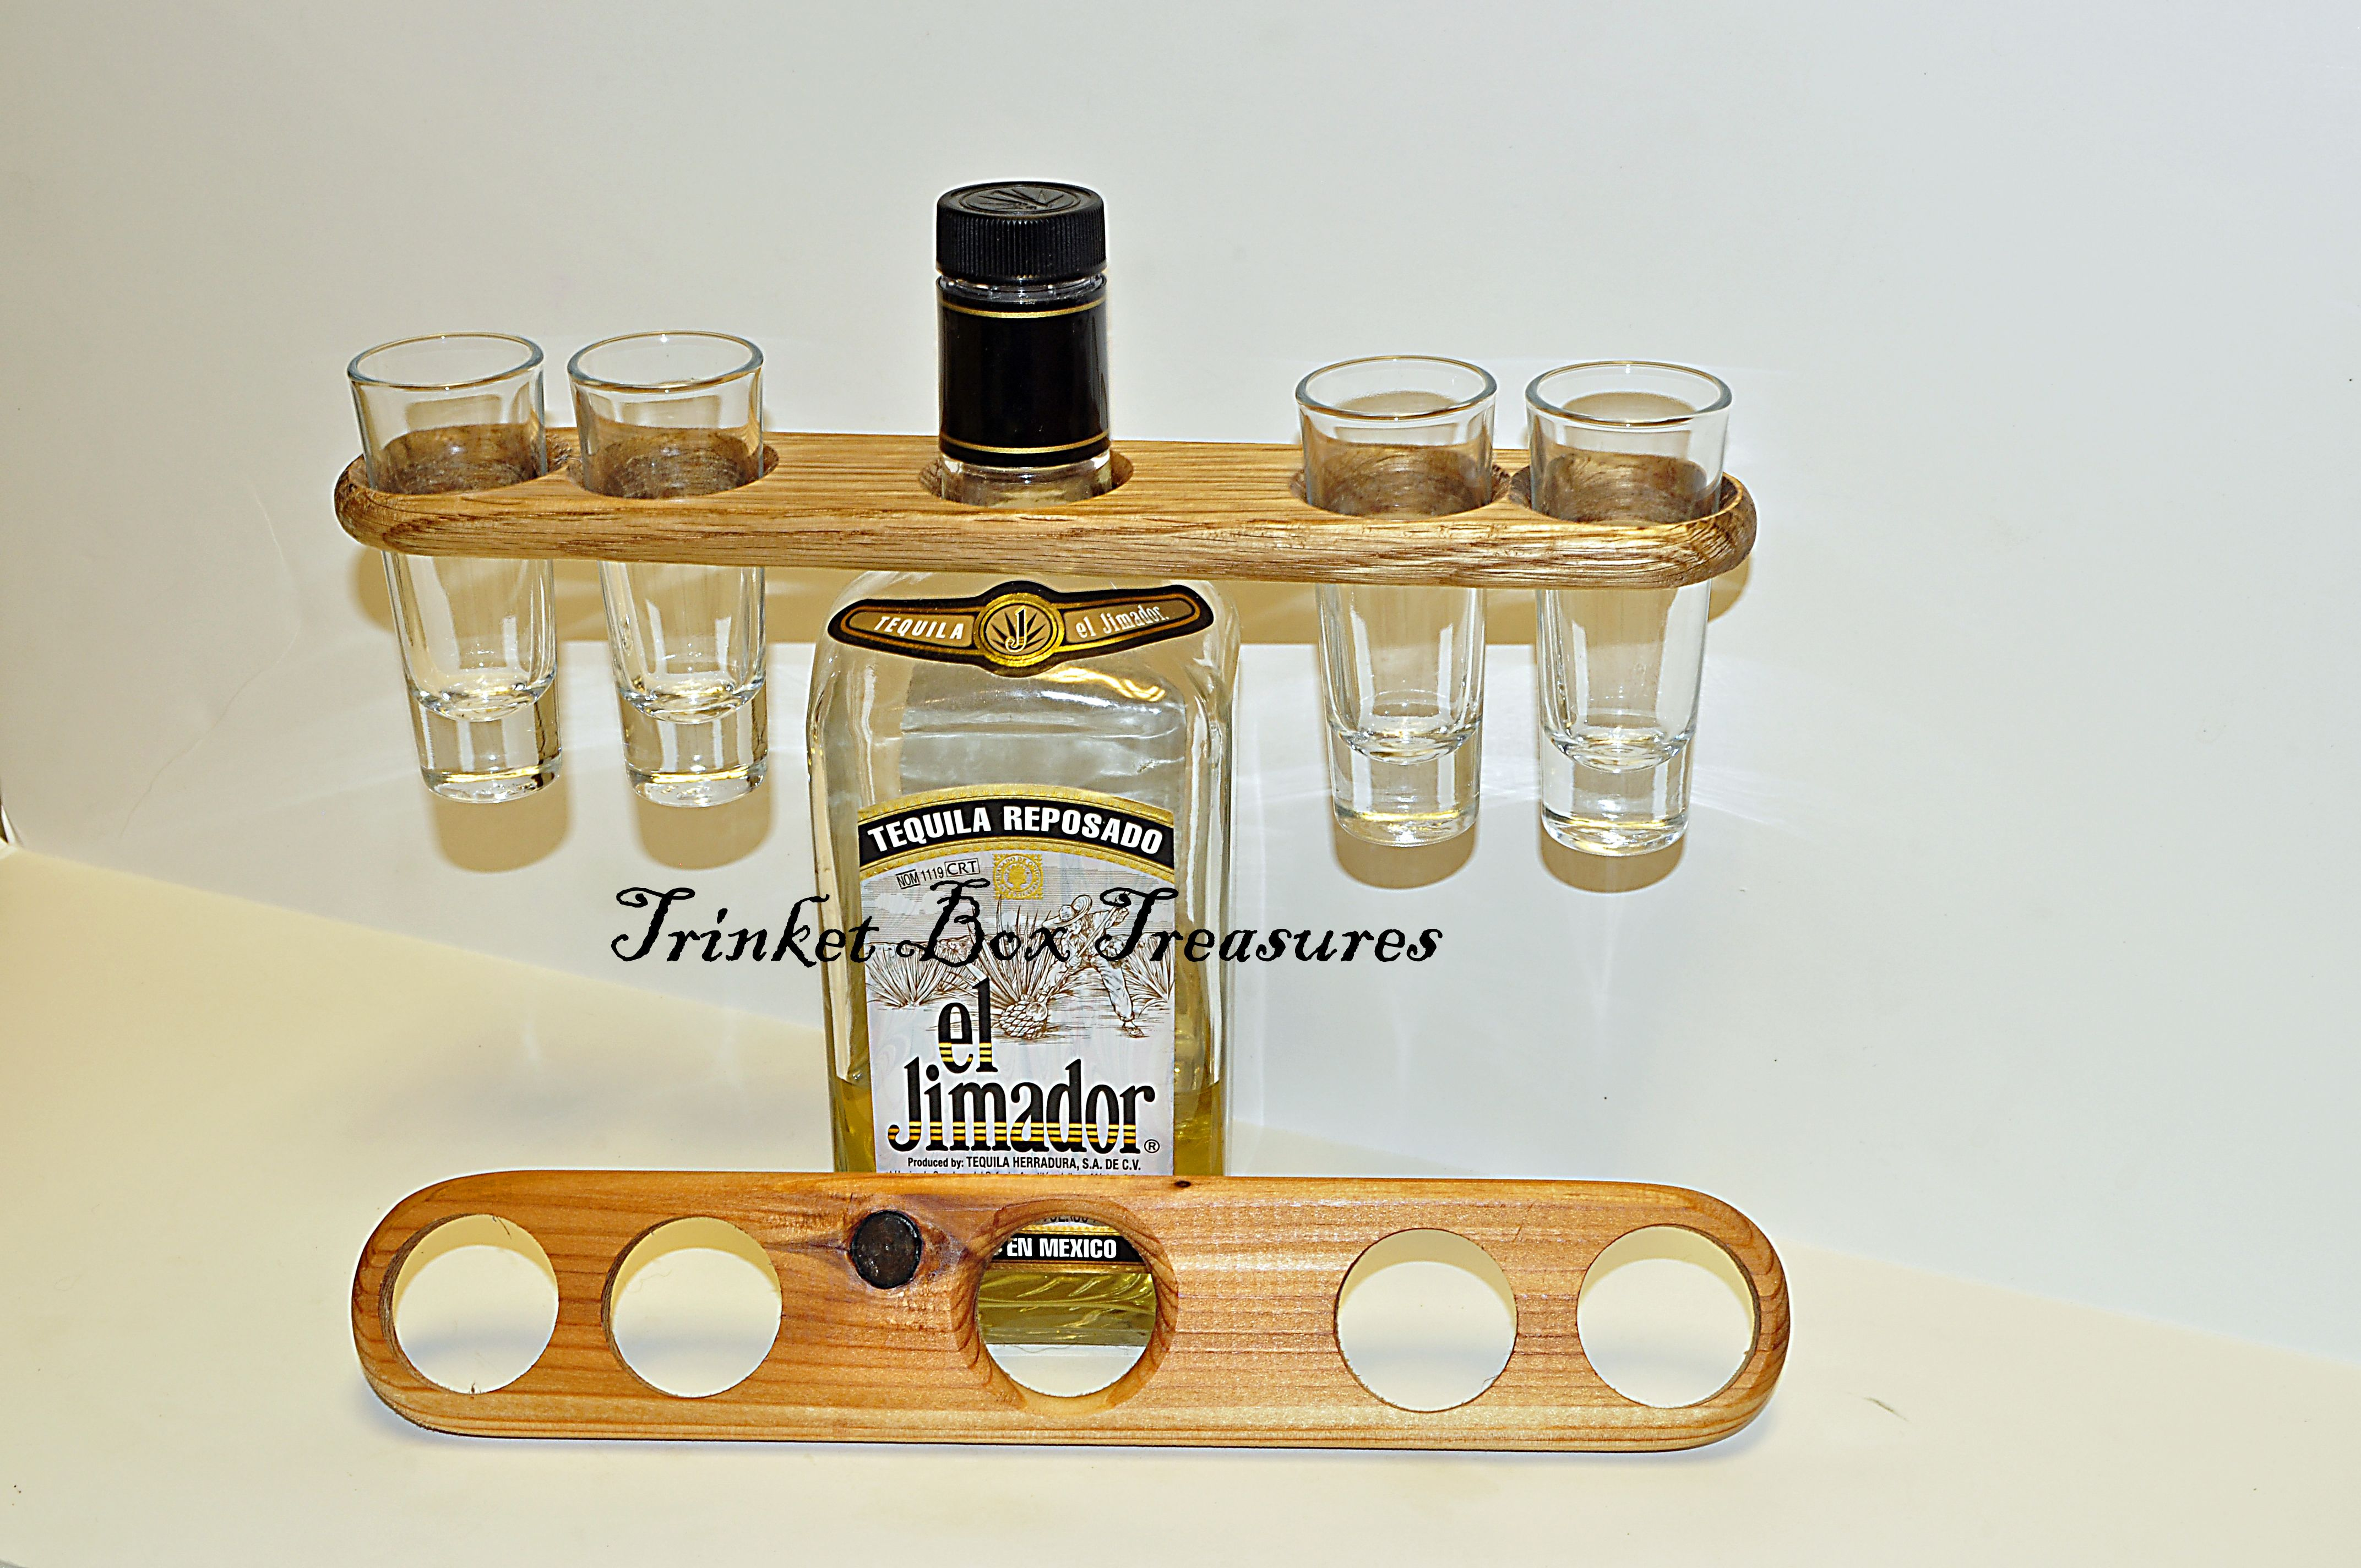 Another Shot Glass Holder This One Holds 4 Shot Glasses Https